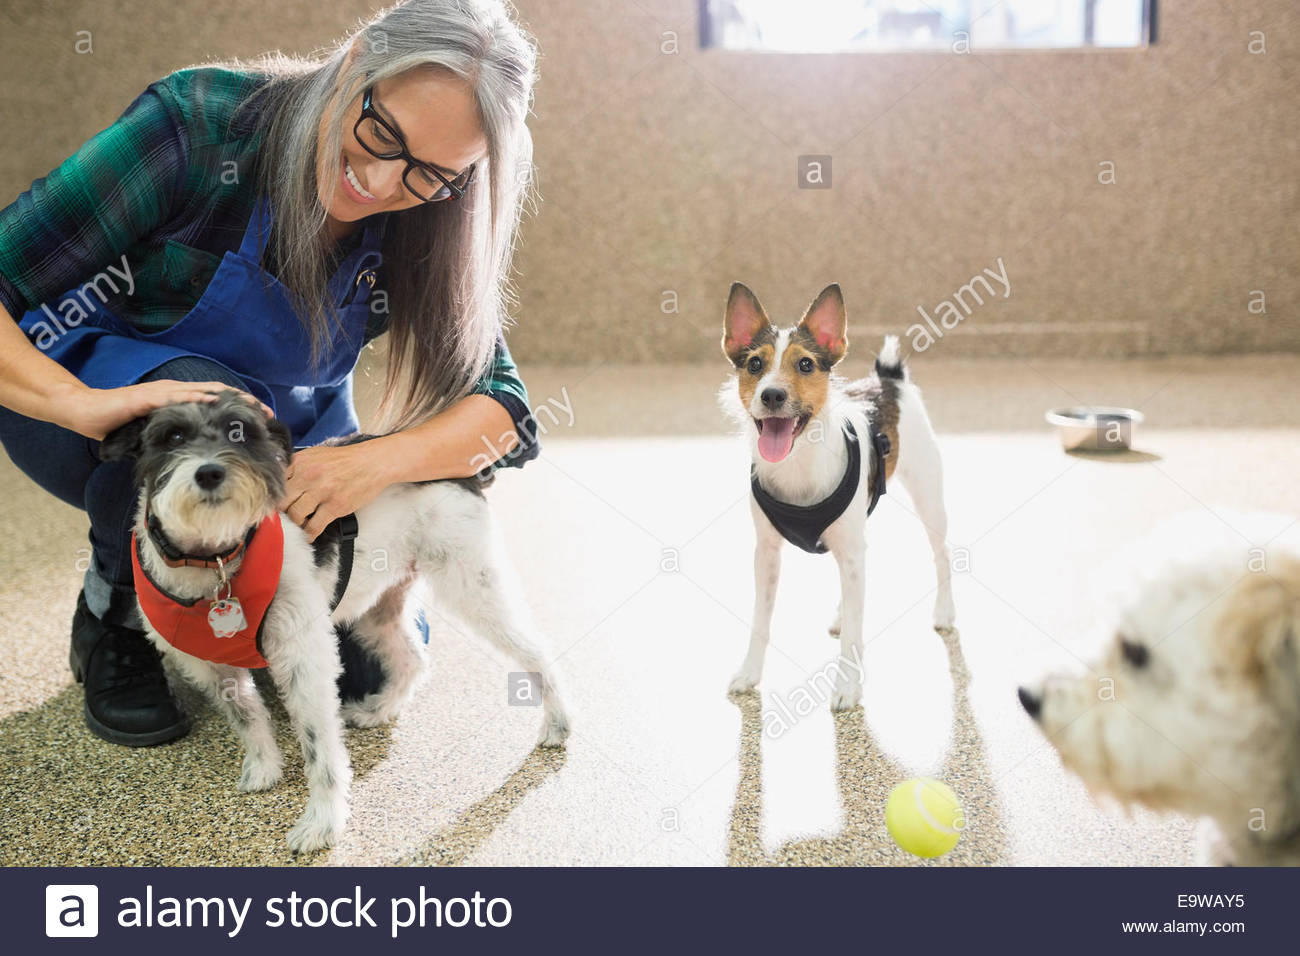 Dog daycare owner tending to dogs - Stock Image